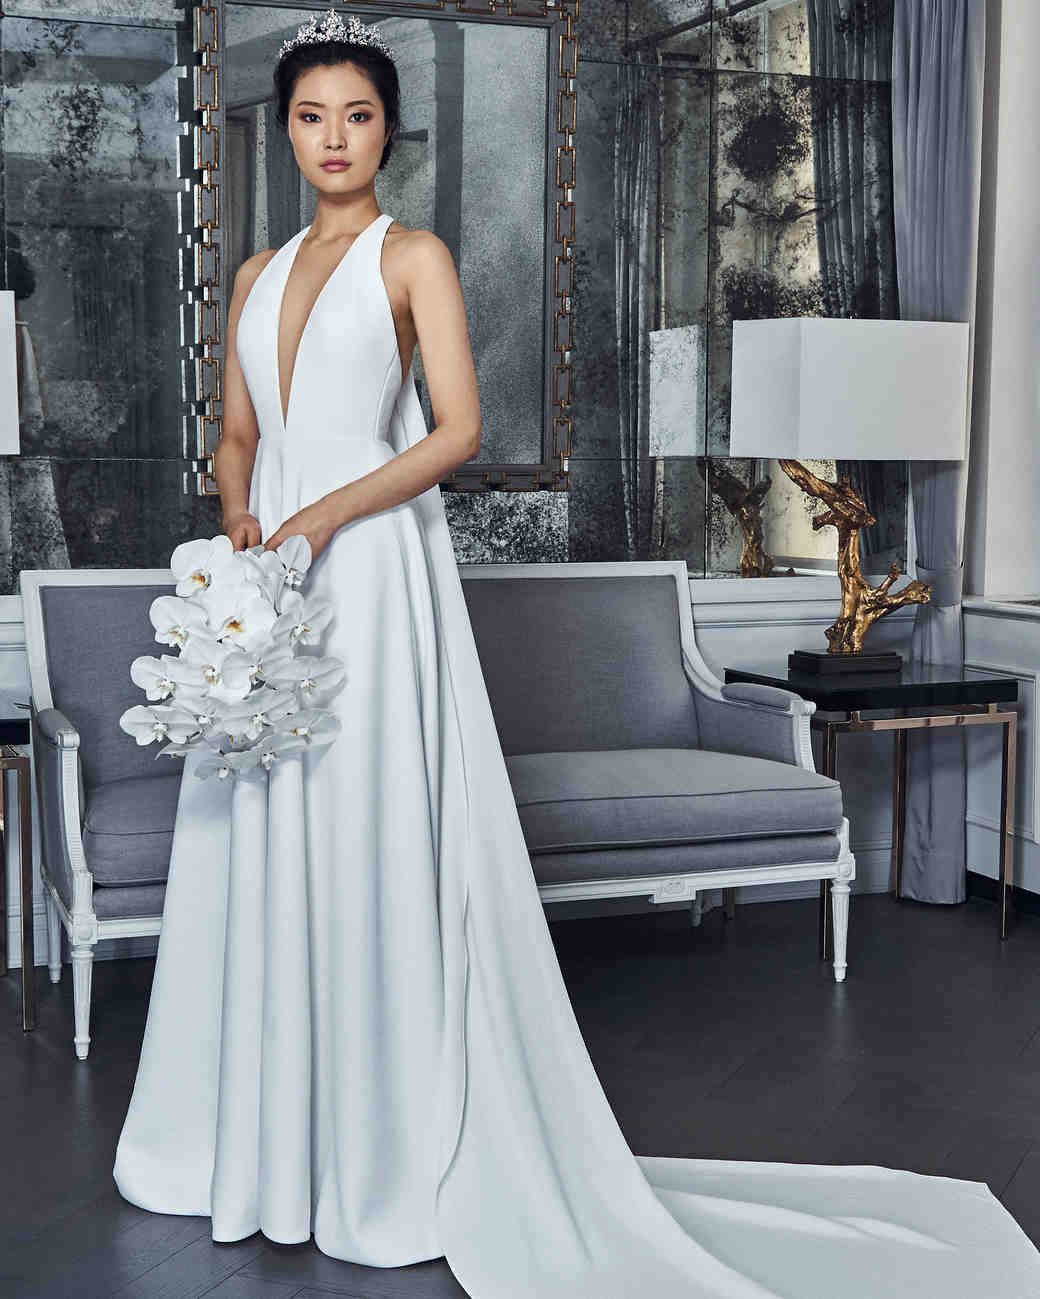 romona keveza collection wedding dress spring 2019 deep v a-line